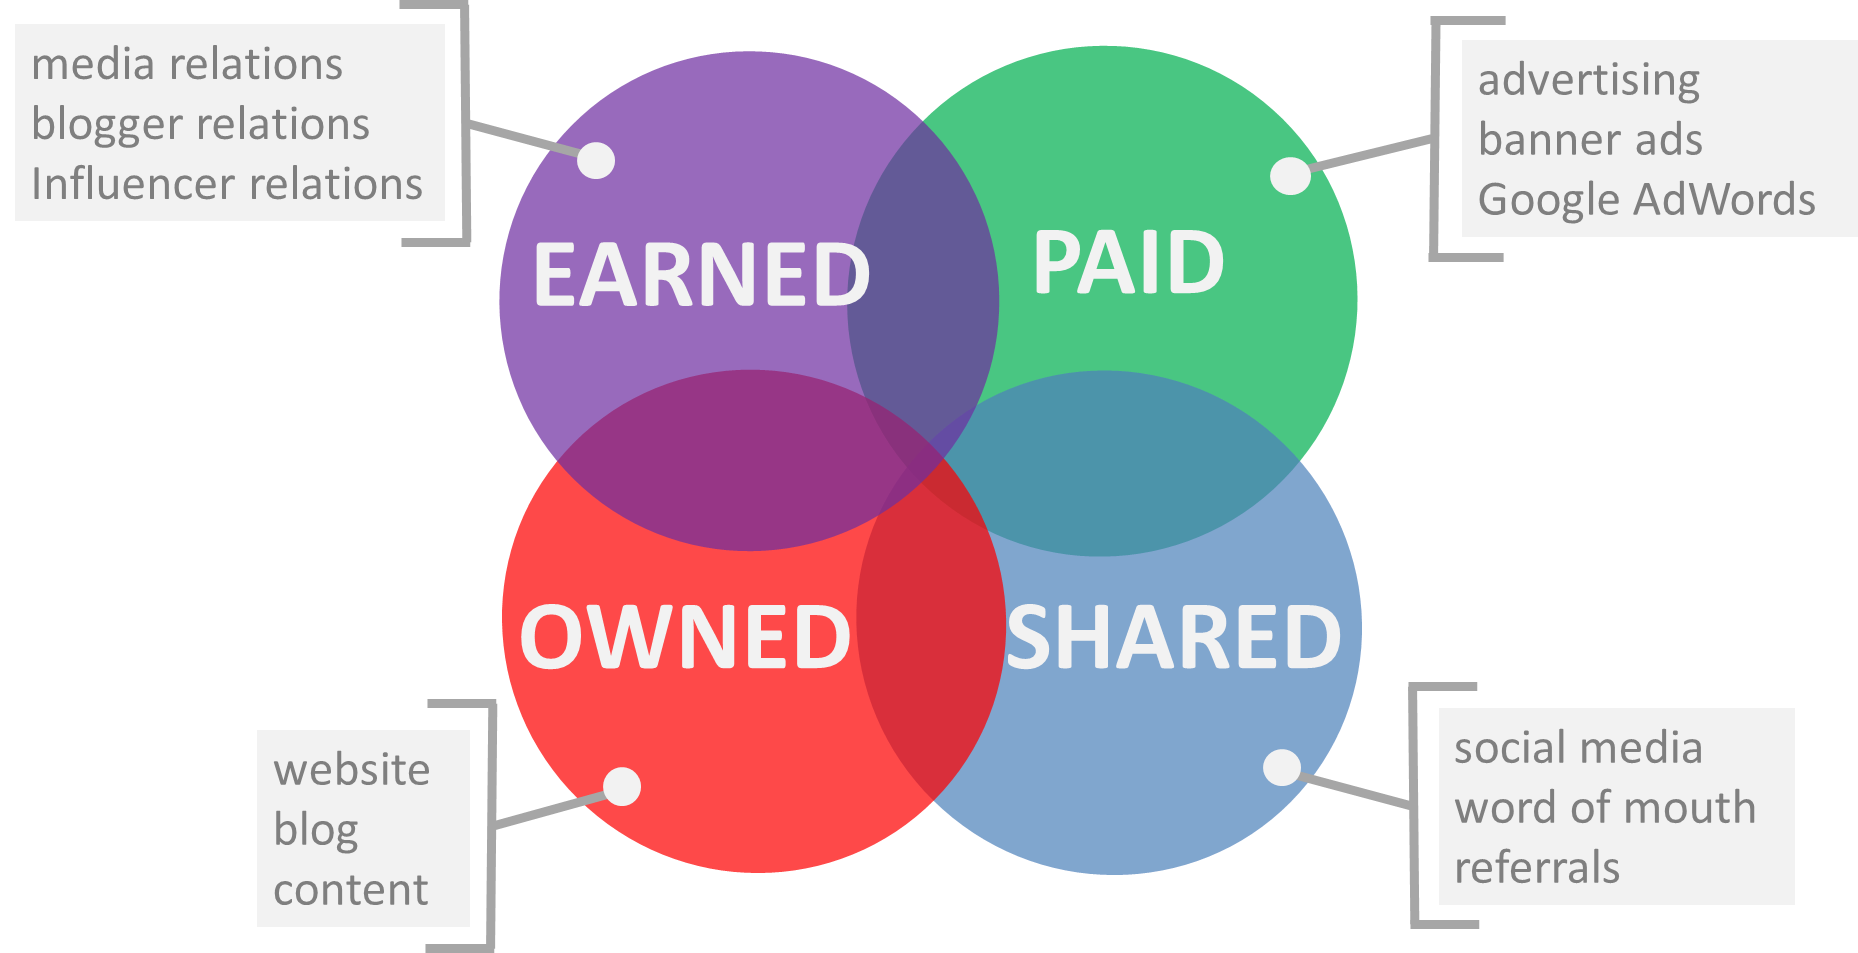 Marketing transparent paid. Sample plan with owned